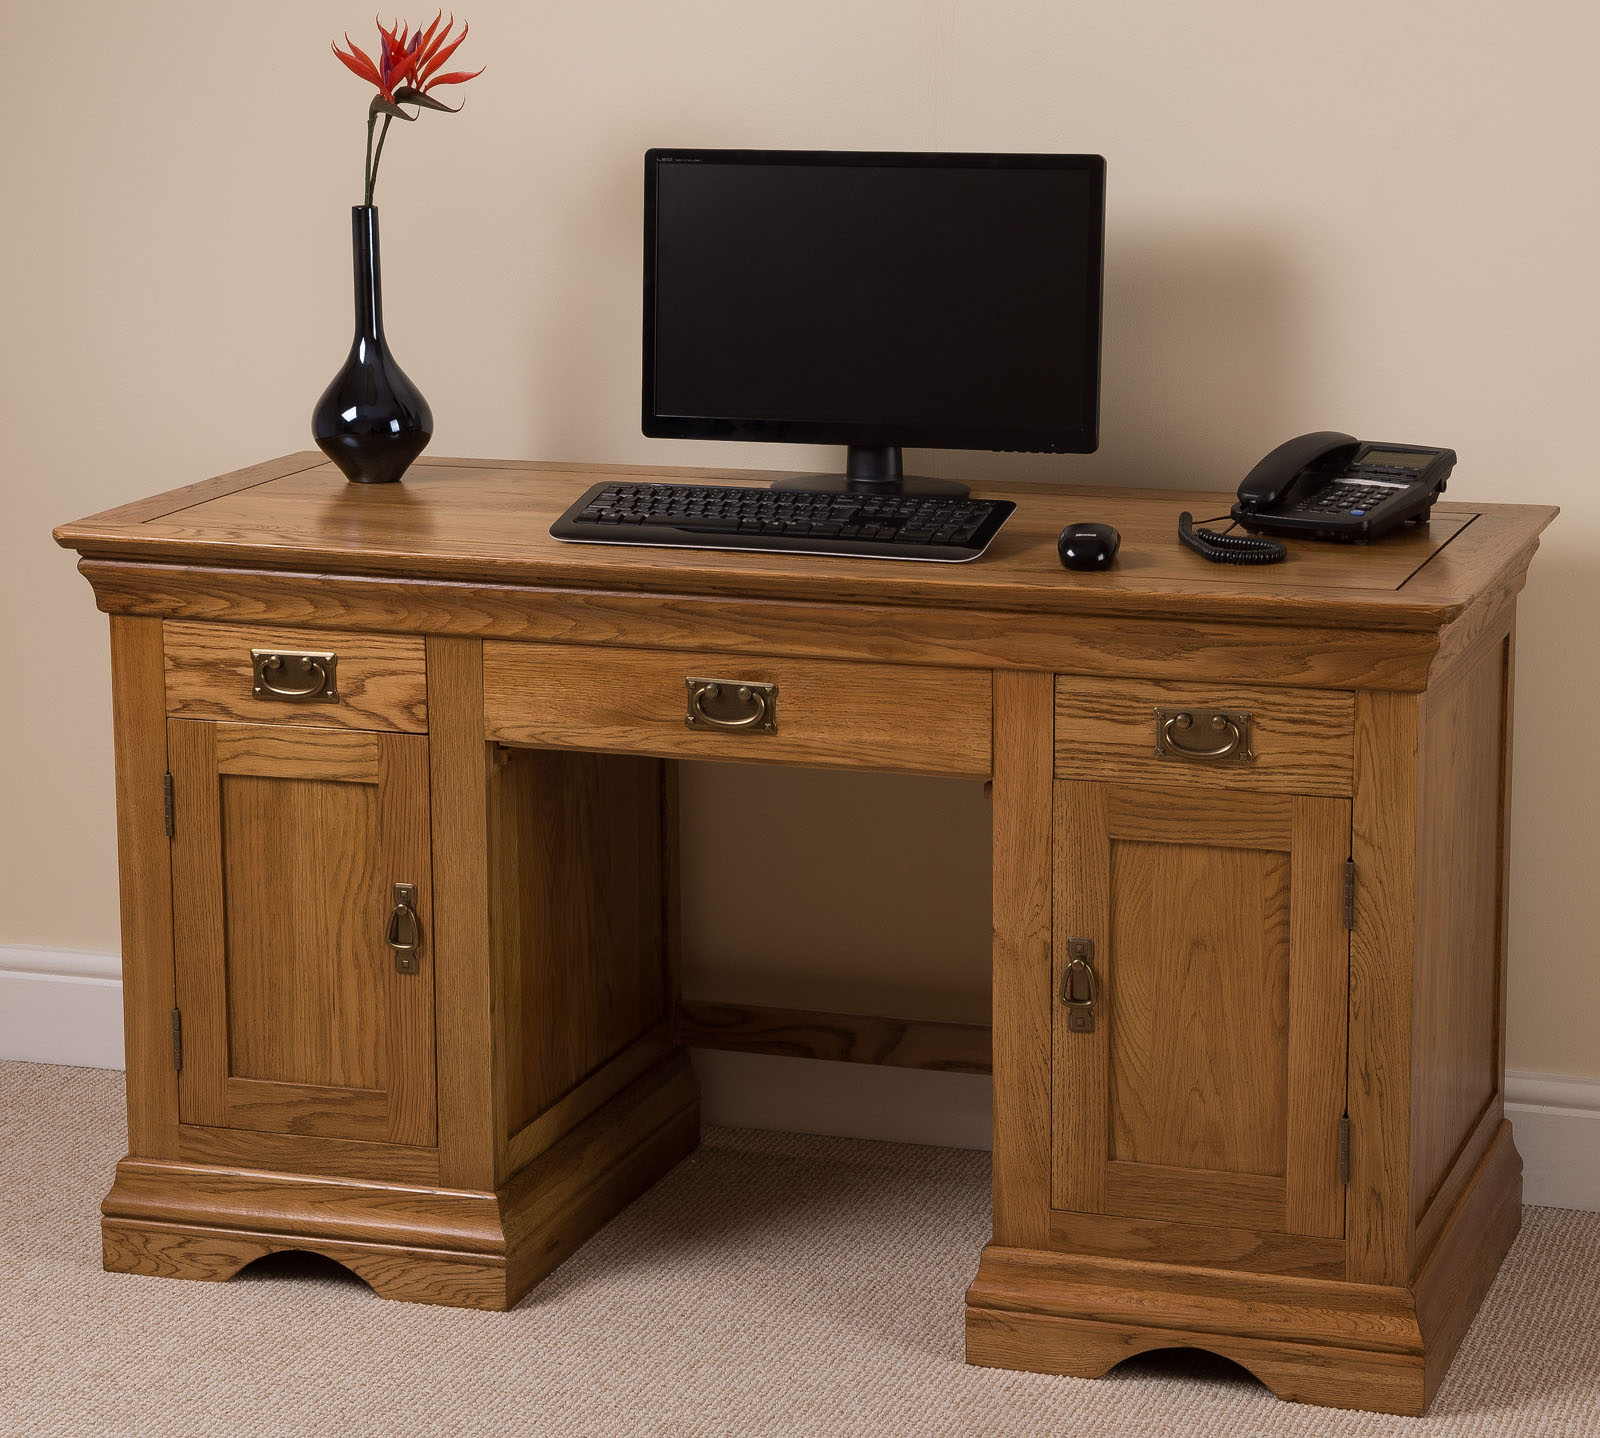 French Rustic Solid Oak Wood Large Computer Desk Office. Uw Help Desk. How To Keep Office Desk Organized. Farm Table Rentals. Step2 Deluxe Art Master Desk. Dealing Desk Broker. Desk Pad Leather. 10 Drawer. Best Buy Computer Desk